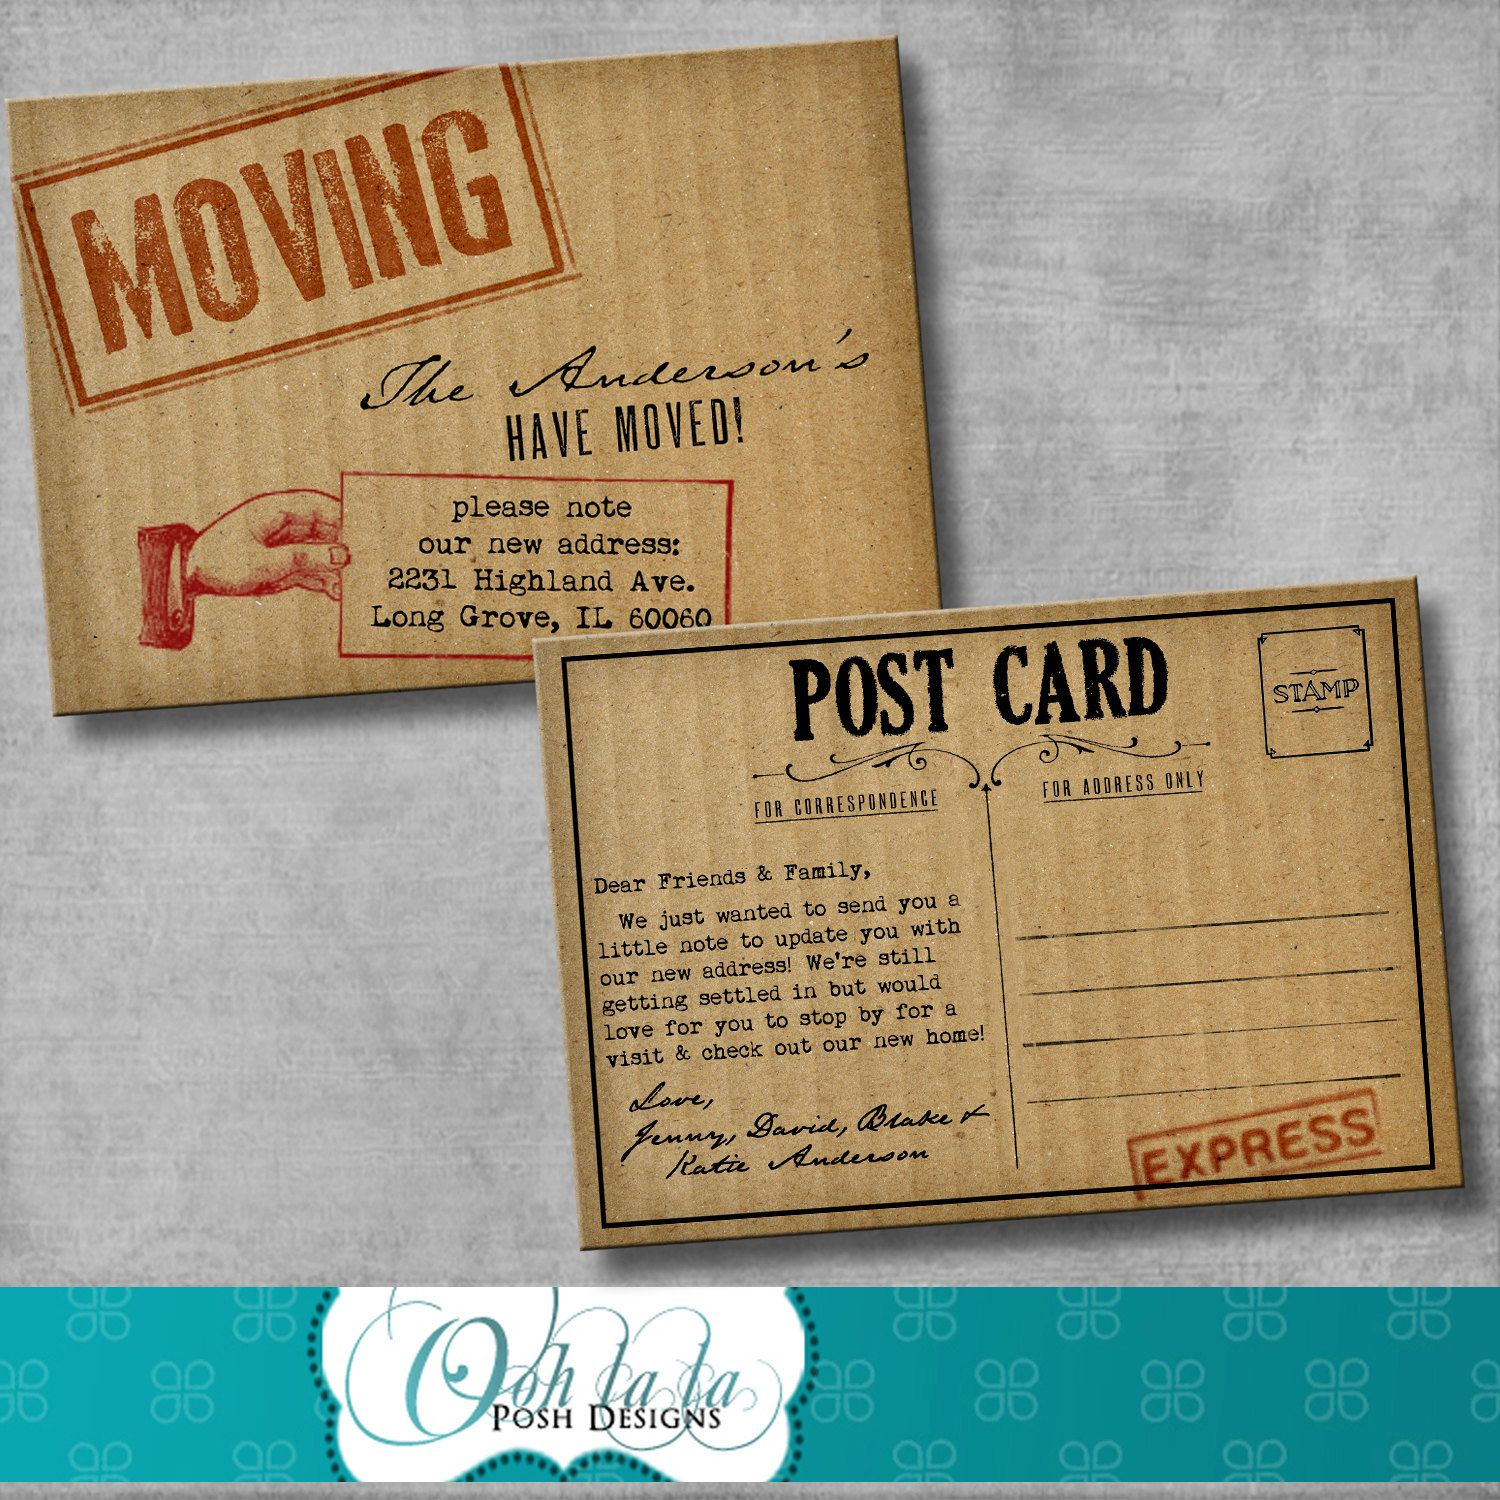 Moving announcement change of address cards cardboard diy moving announcement change of address cards cardboard diy printable customizable kristyandbryce Gallery